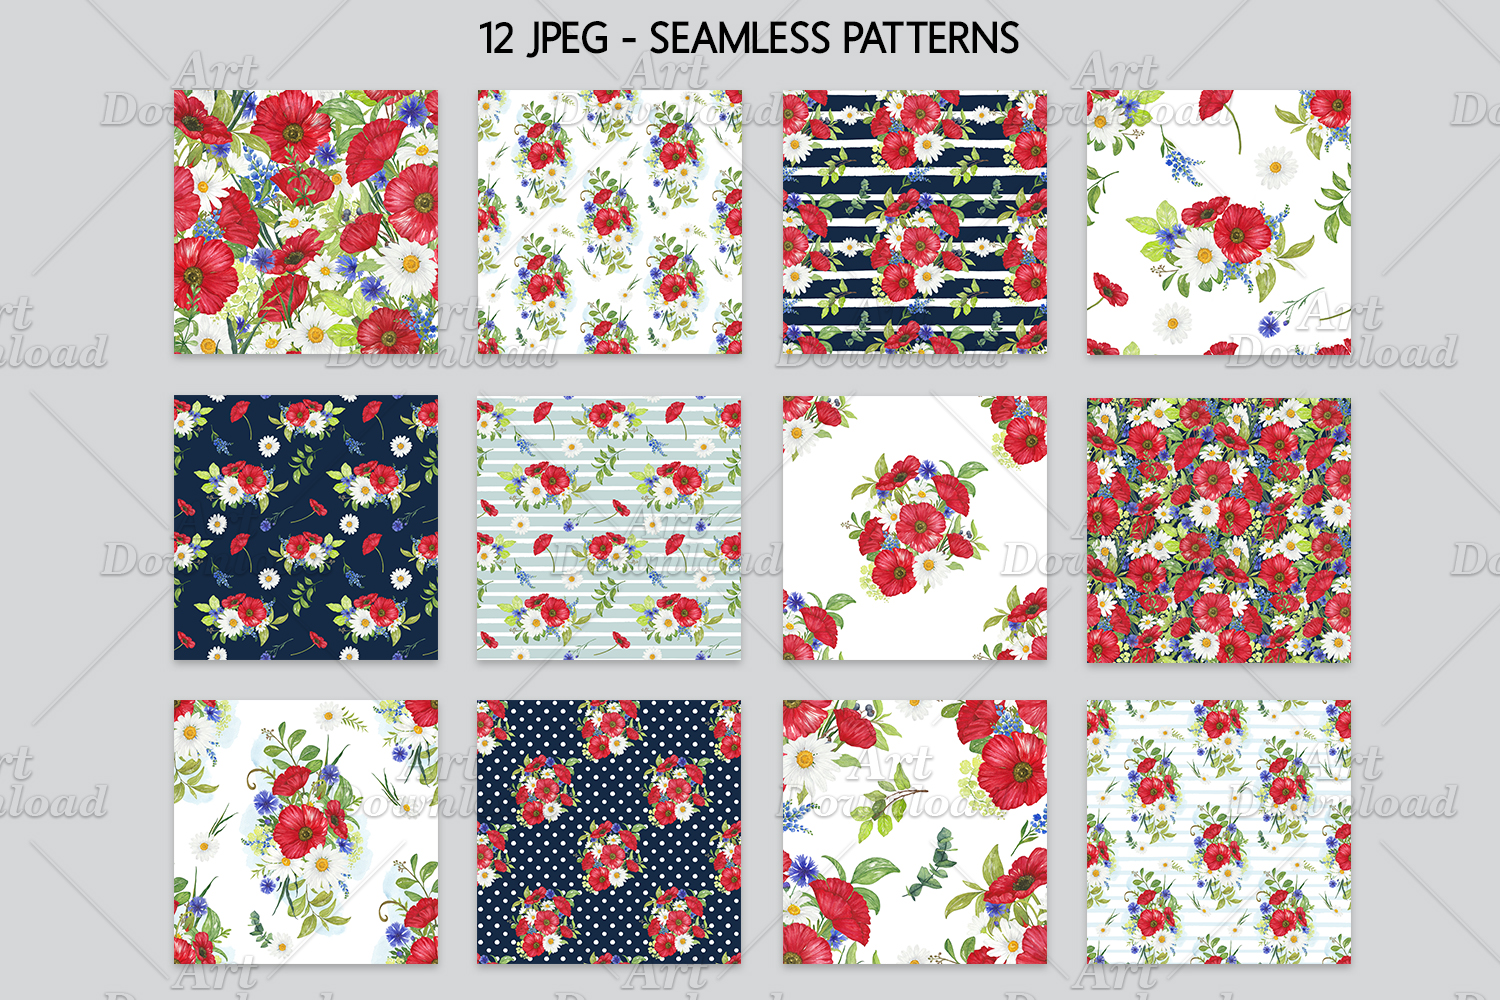 Poppies Digital Papers Floral Seamless Patterns example image 6